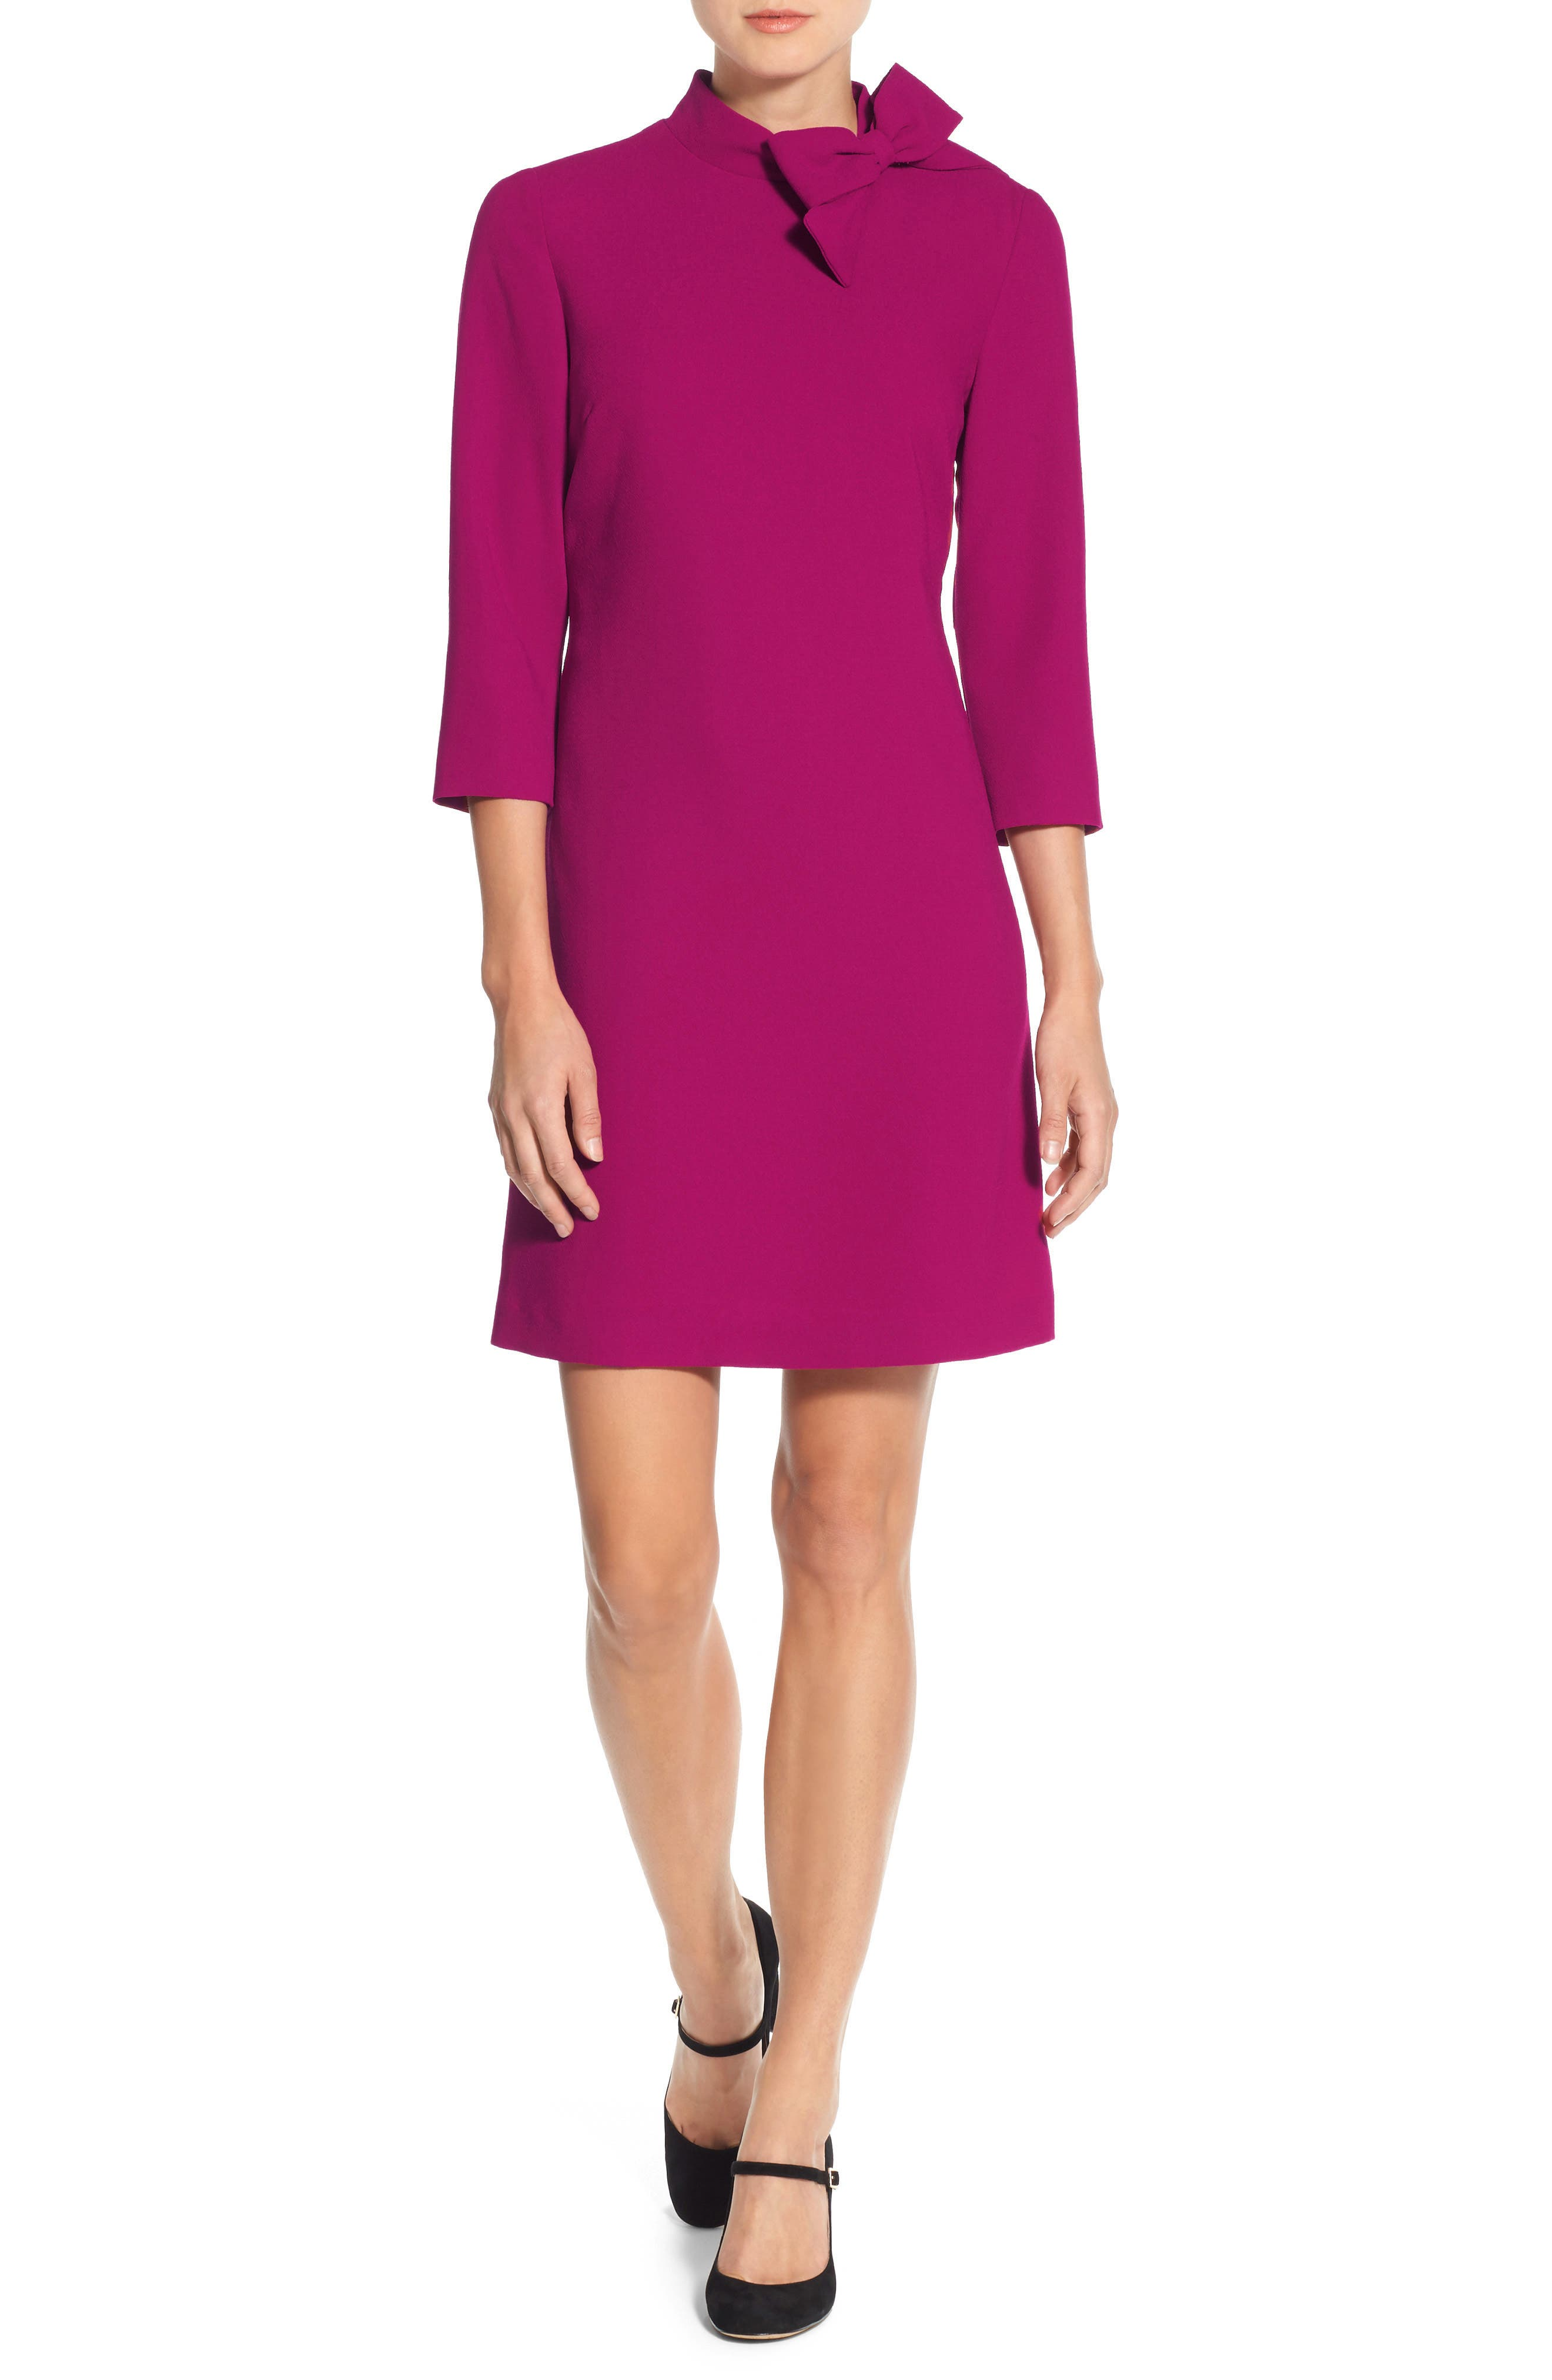 Bow Crepe A-Line Dress,                             Alternate thumbnail 10, color,                             PINK